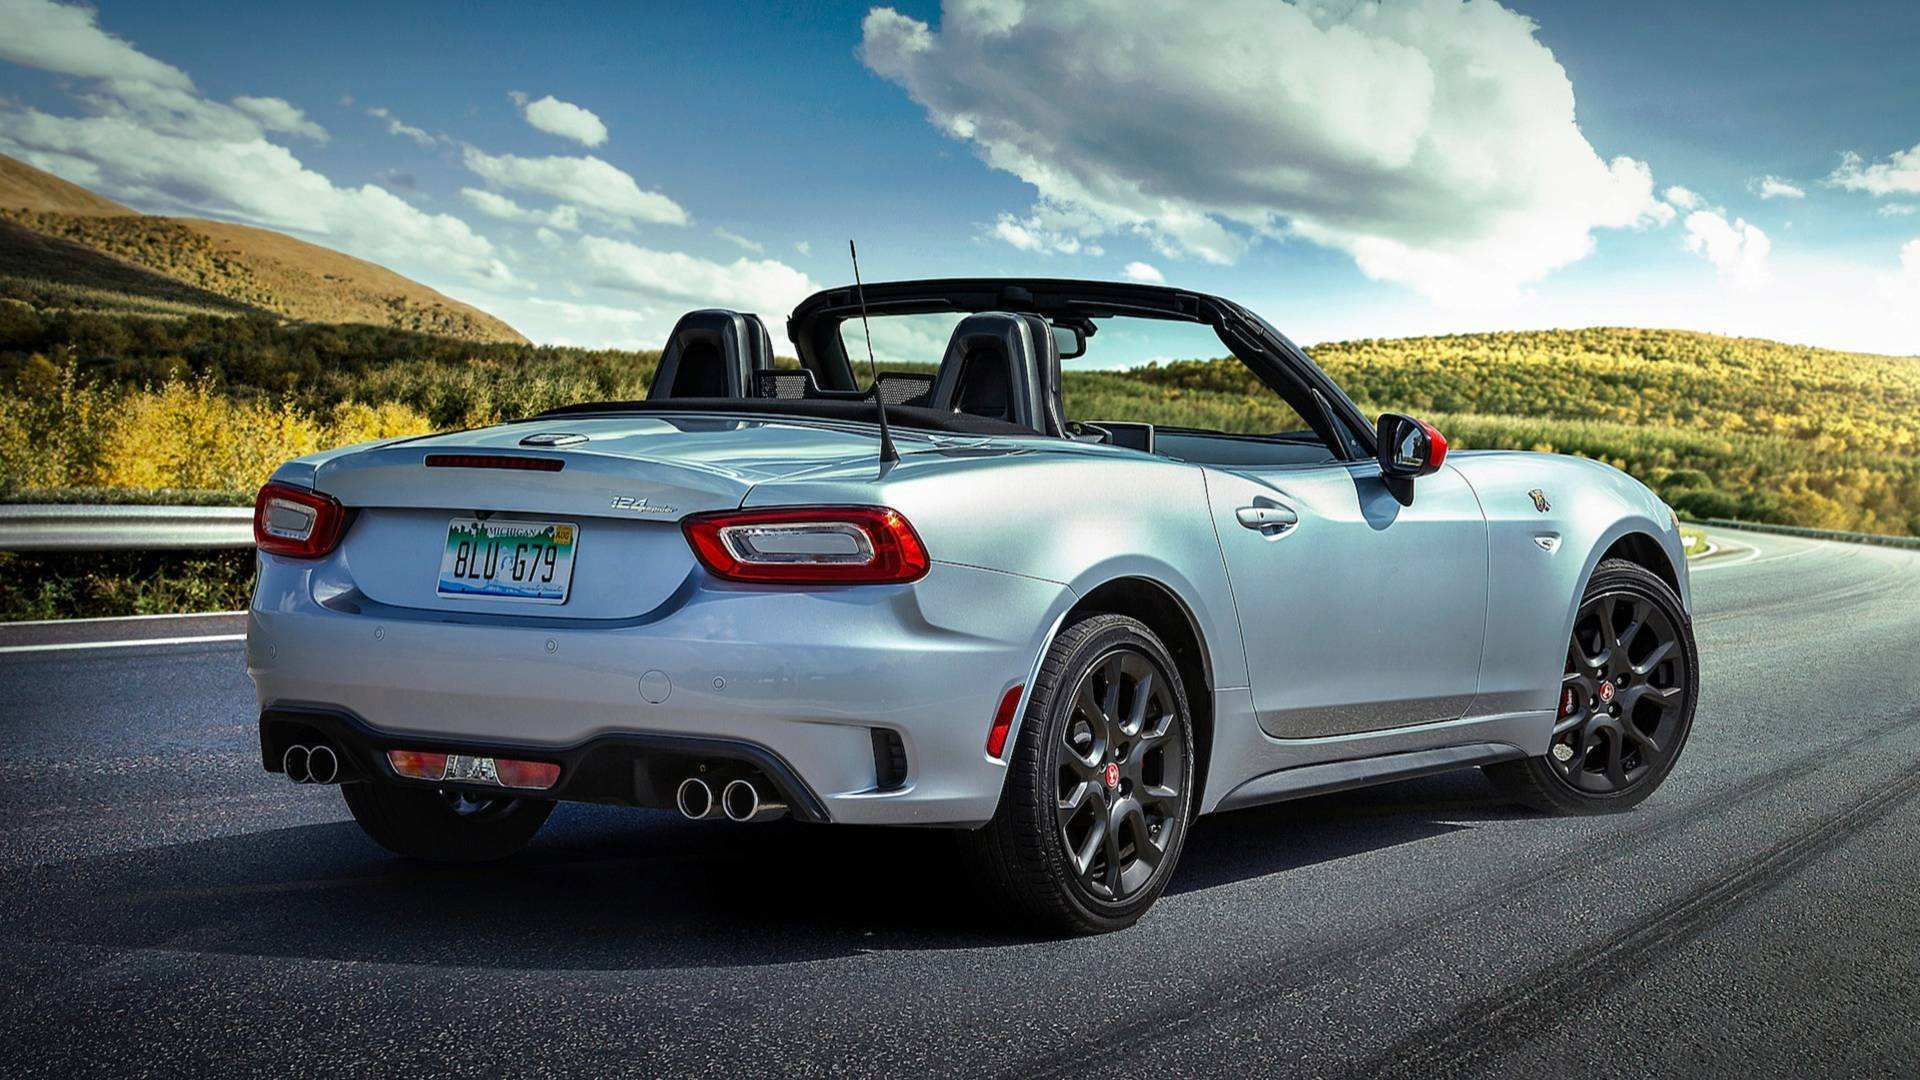 83 Best Review 2019 Fiat Abarth 124 Spider New Review with 2019 Fiat Abarth 124 Spider